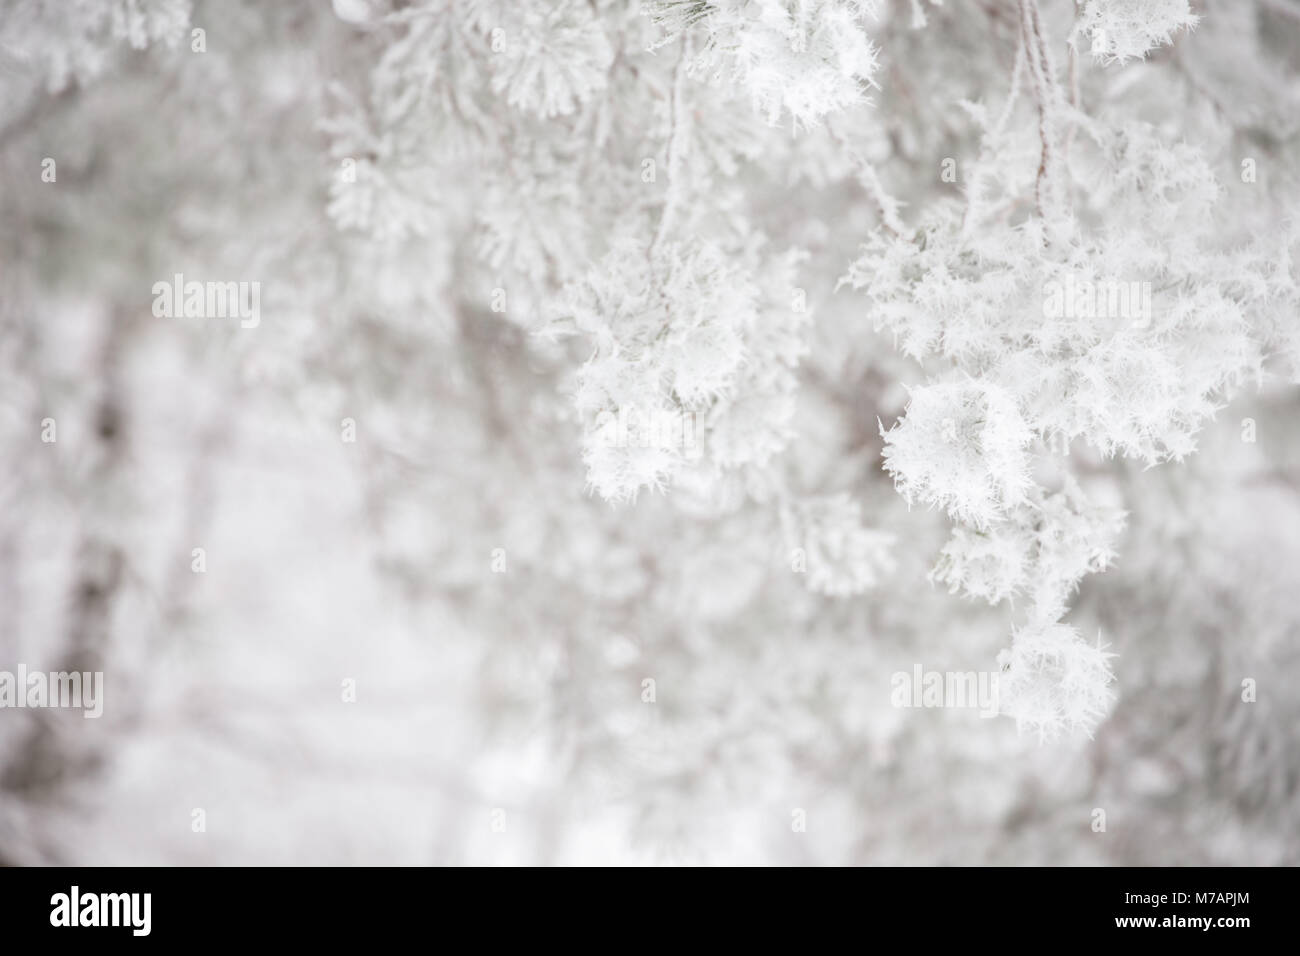 Close-up of frosted Pine branches thick white hoarfroast, blurred background - Stock Image